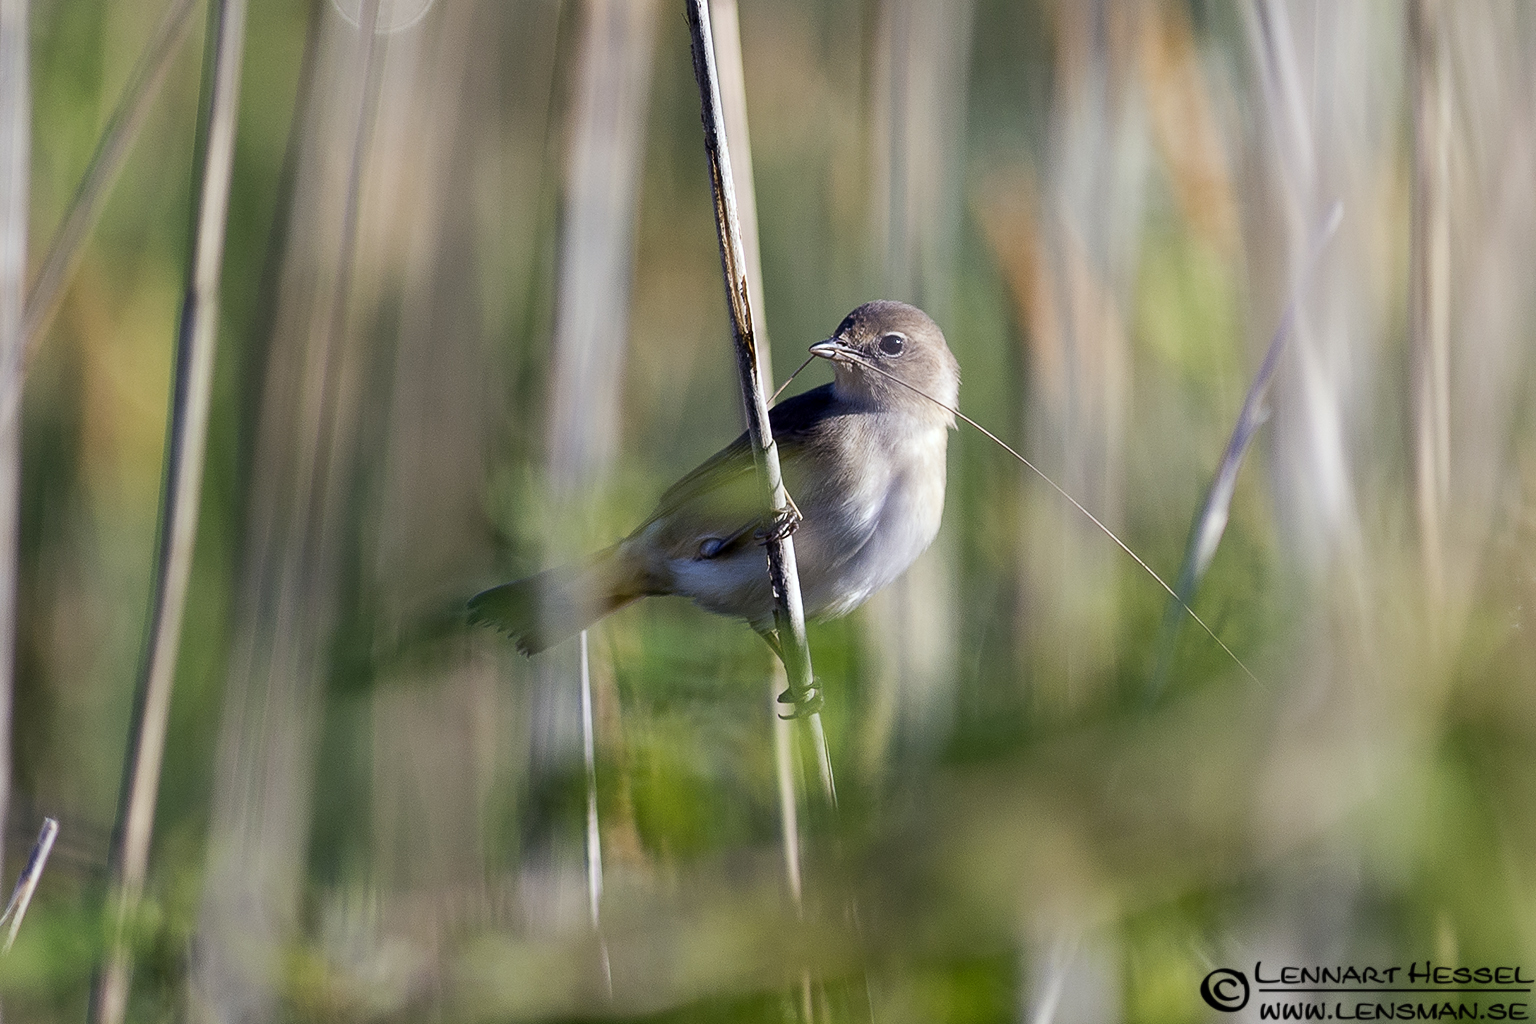 Common Whitethroat at Säveån, Gothenburg